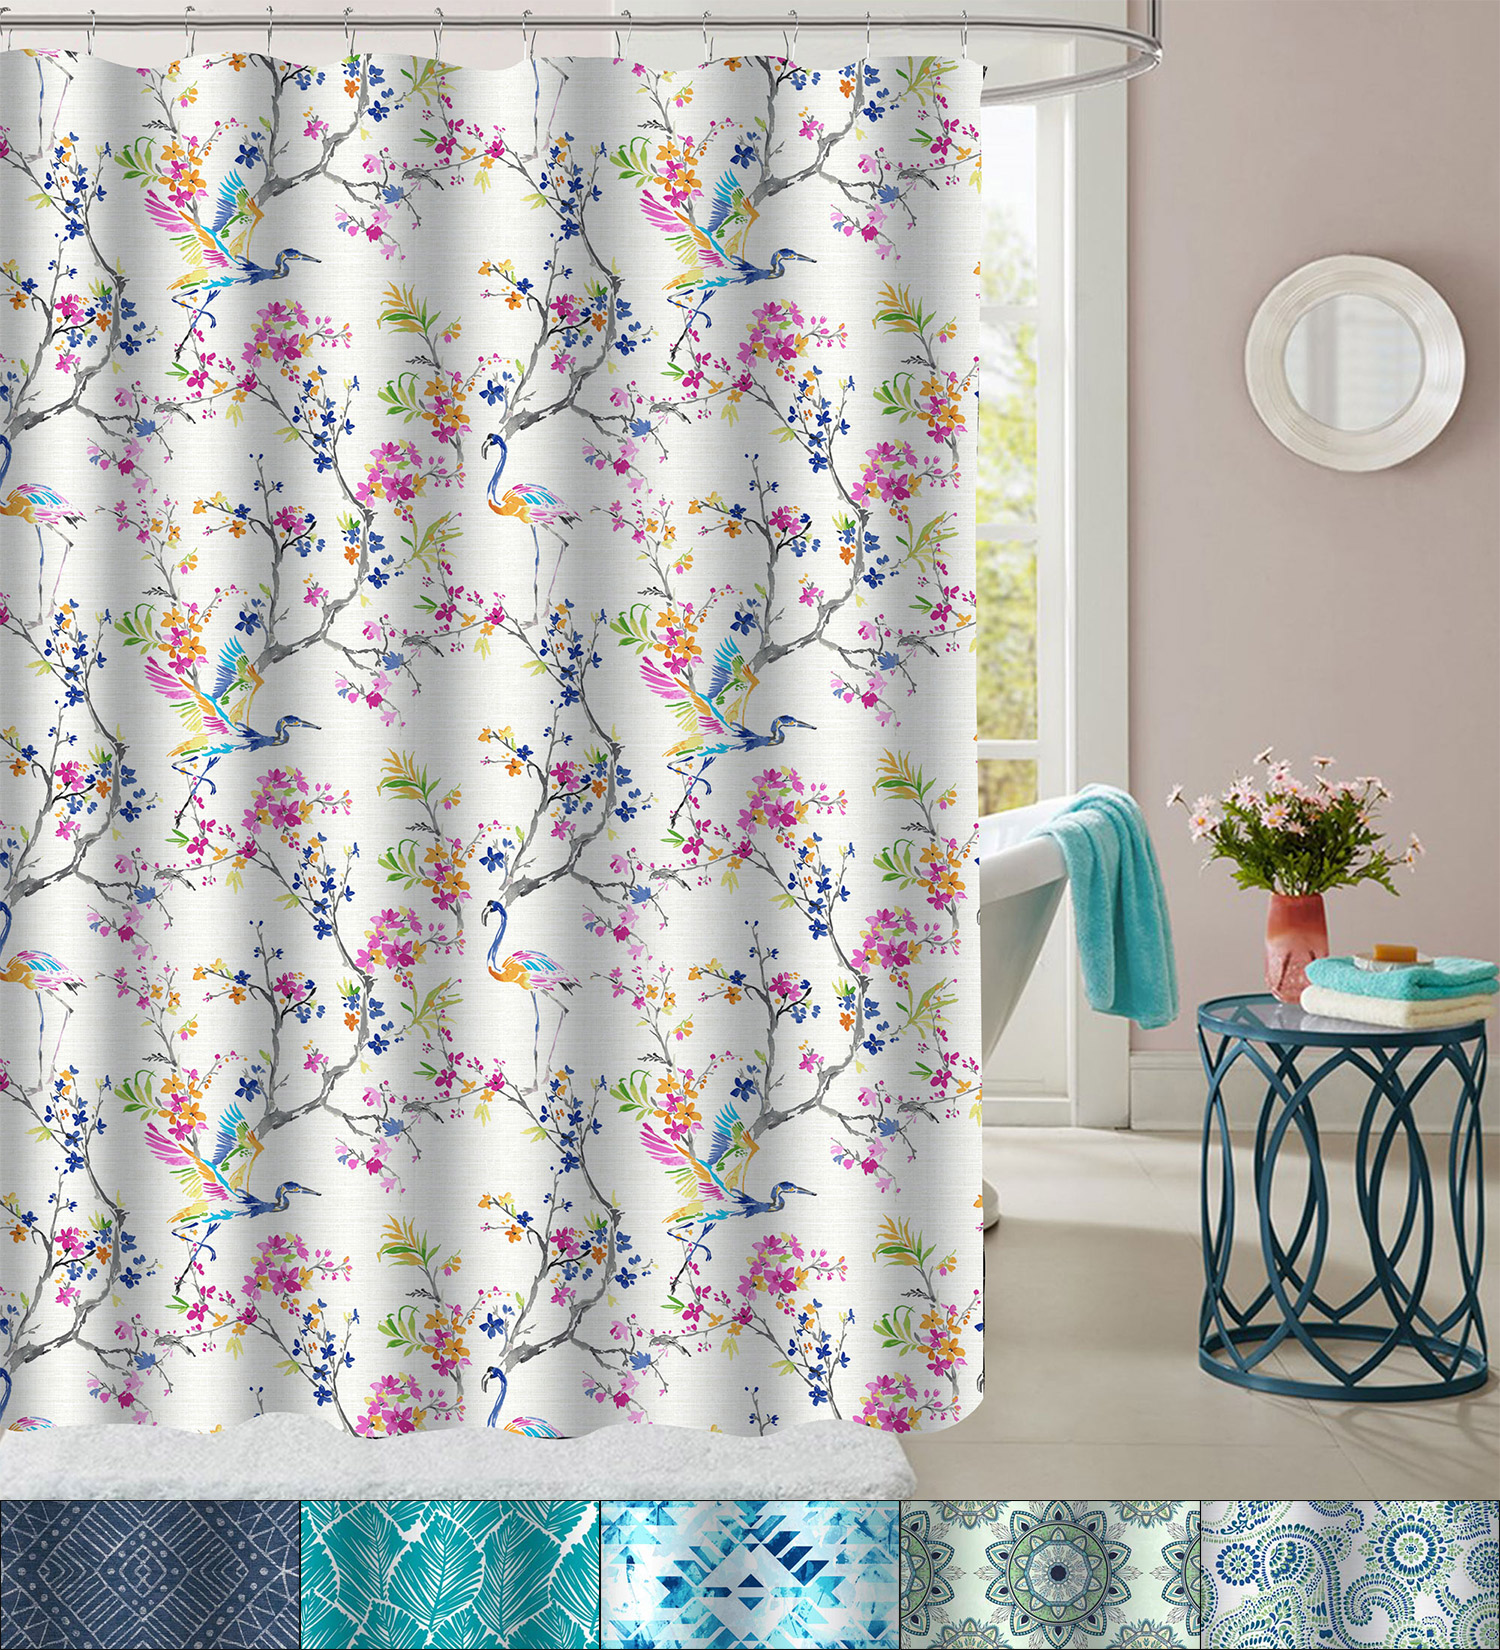 Geometric Fabric Shower Curtain 72 x 70 Printed Patterns Floral 15 Styles